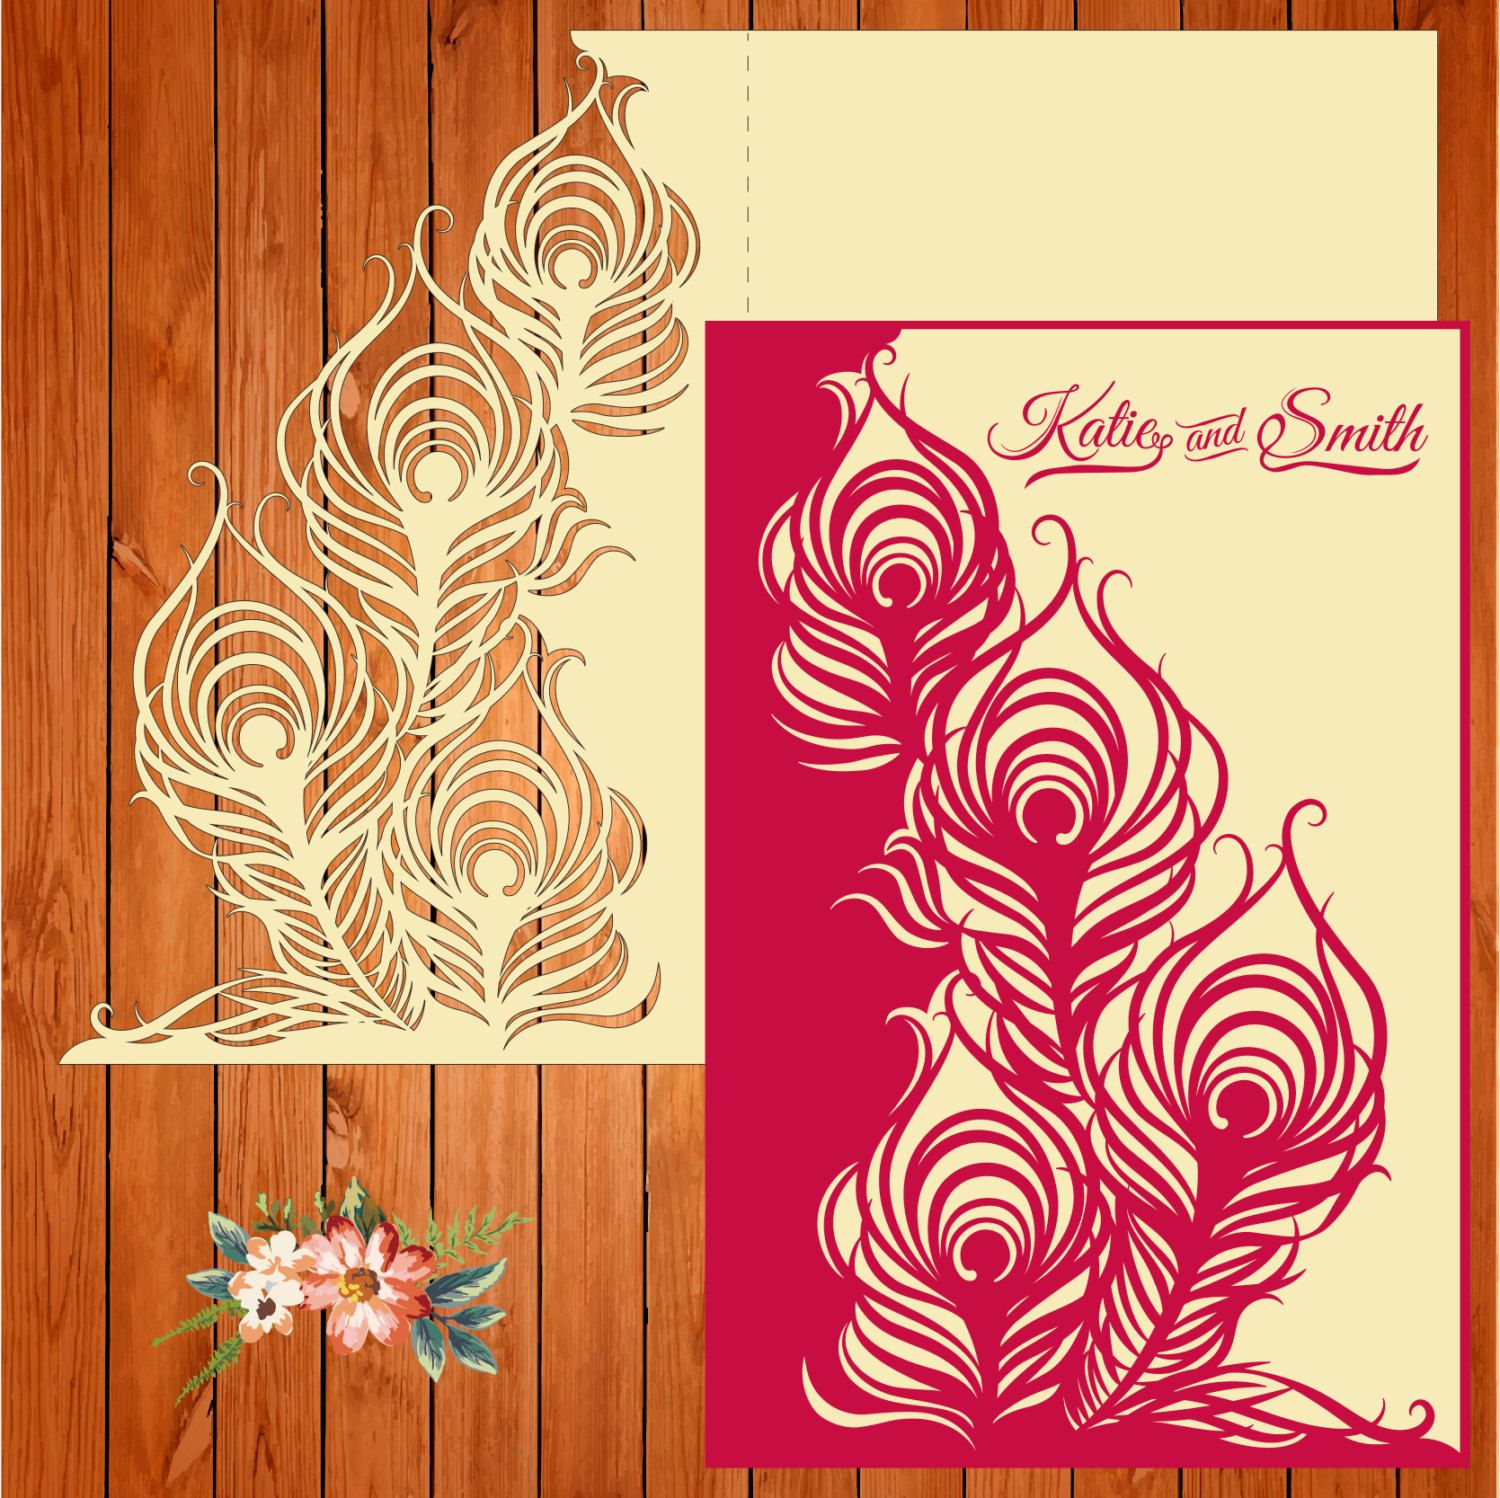 Wedding card invitation template, figures, feathers (ai, eps, svg ...